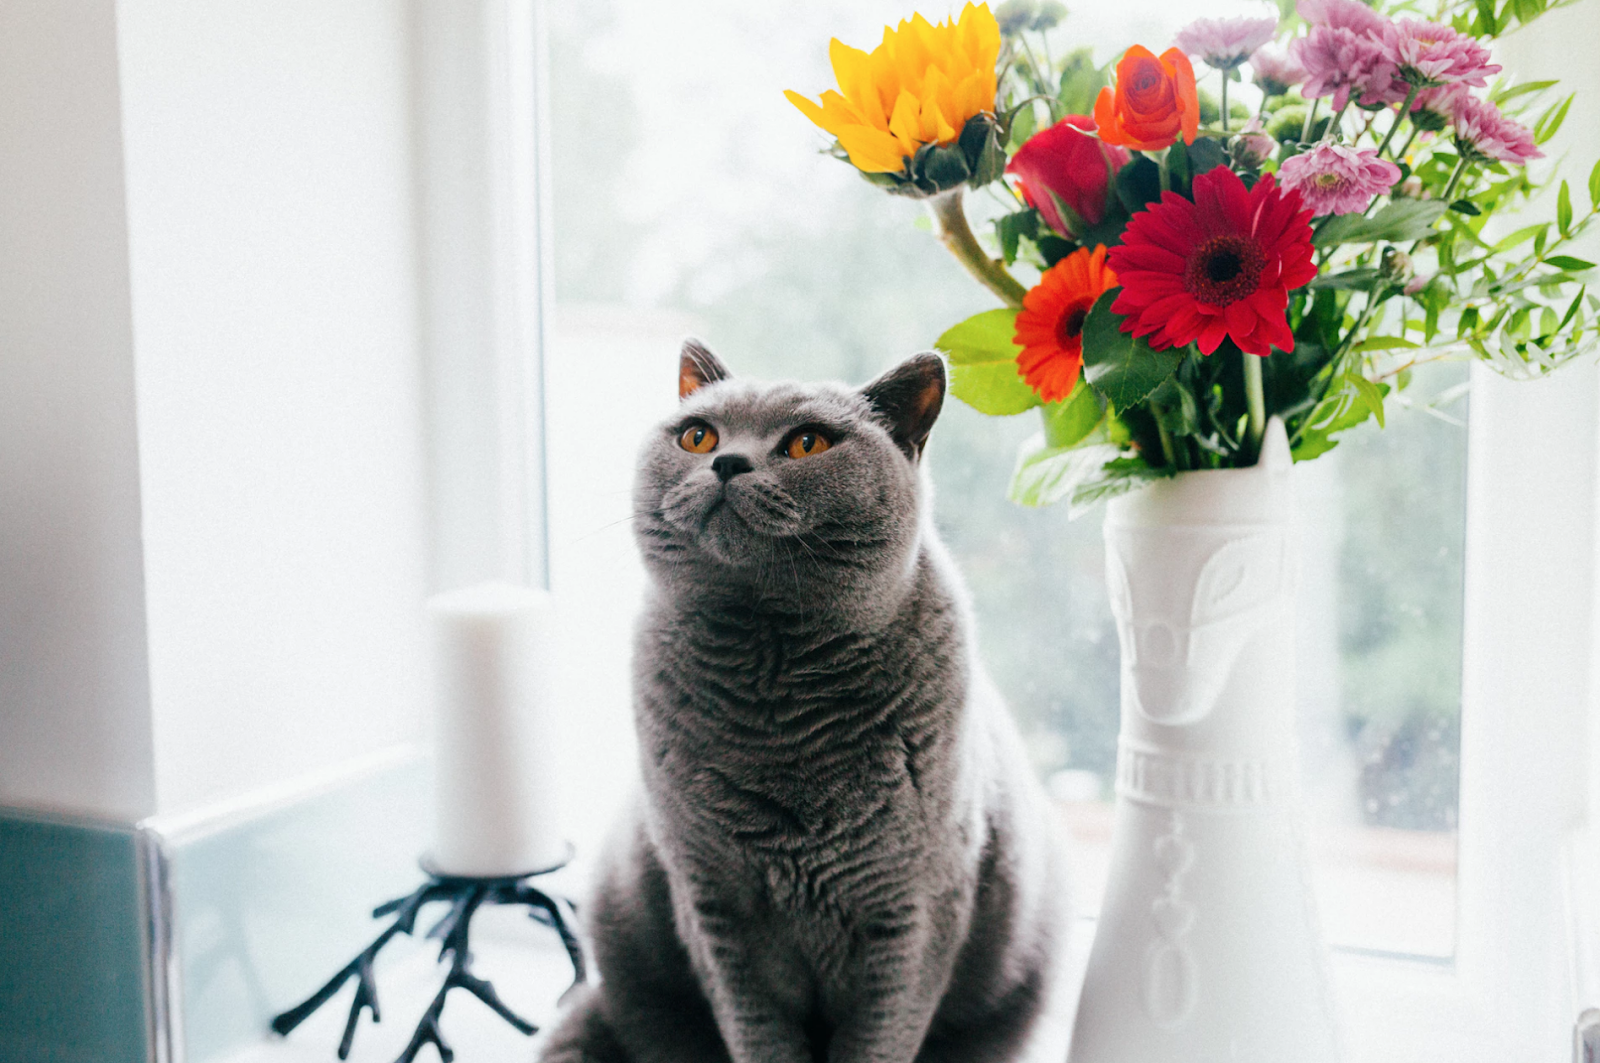 A gray cat with orange eyes sits next to a colorful vase of flowers, relaxing after a day full of play and exercise